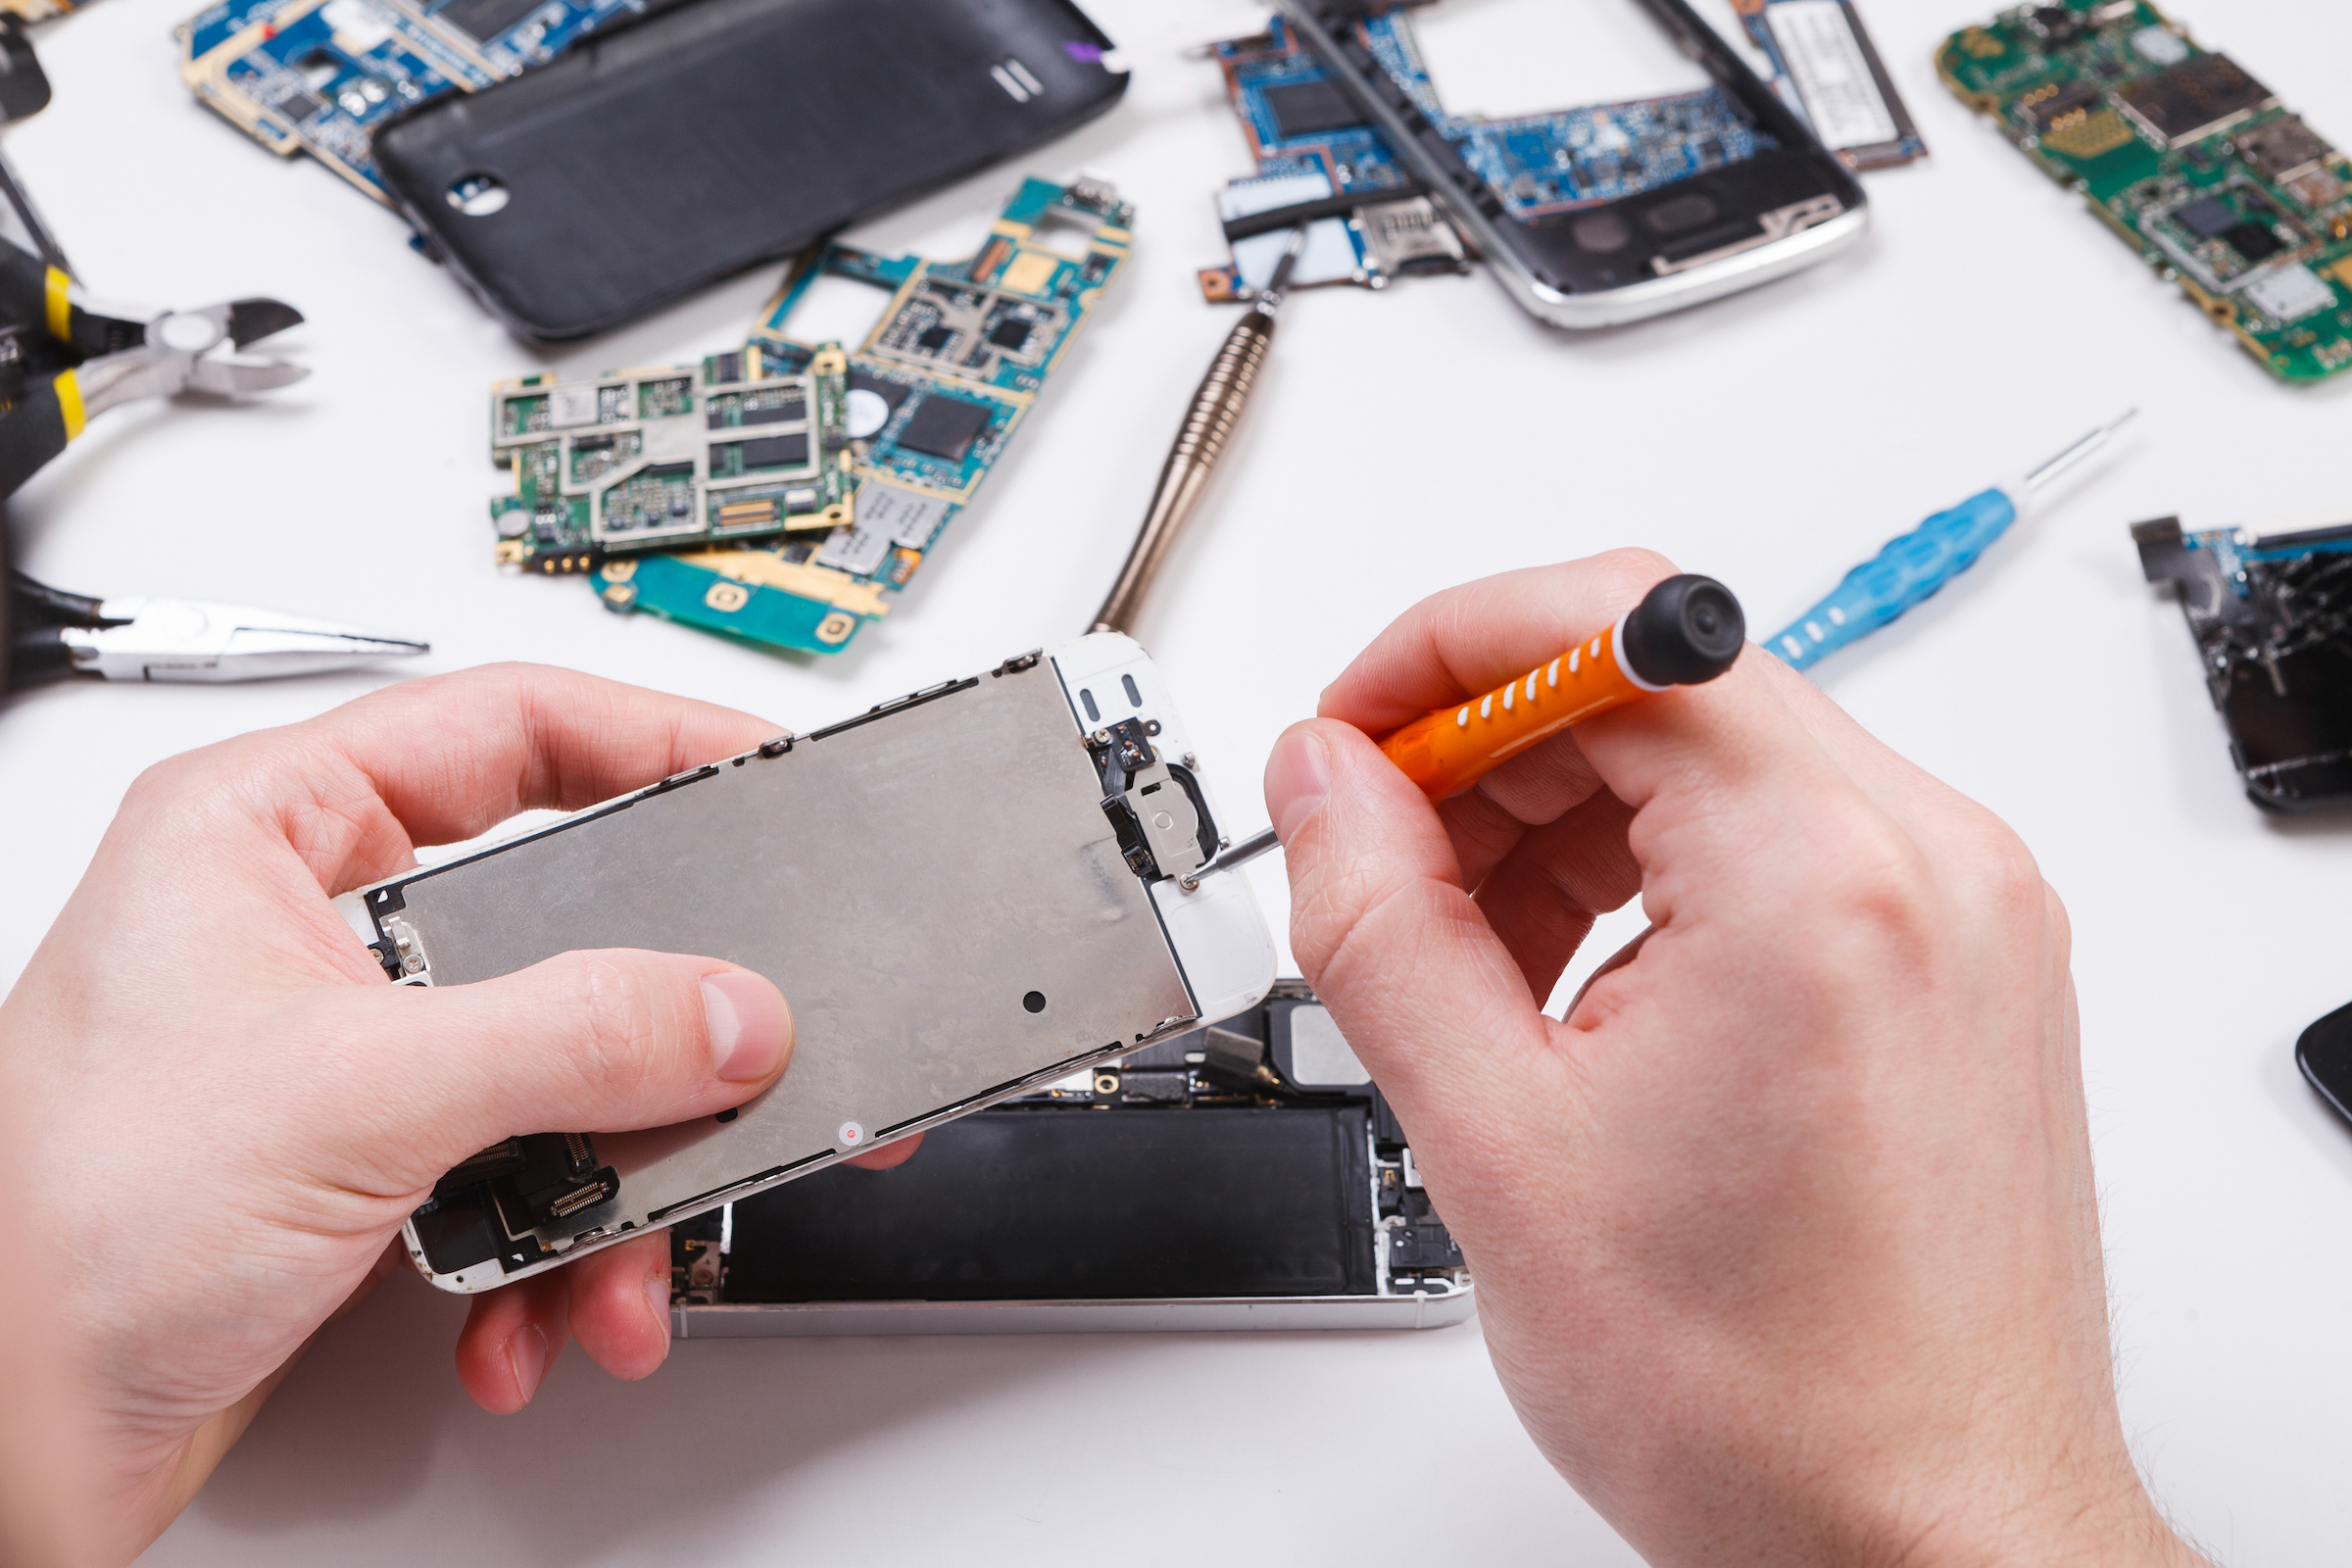 Factors that influence third party phone repair prices.